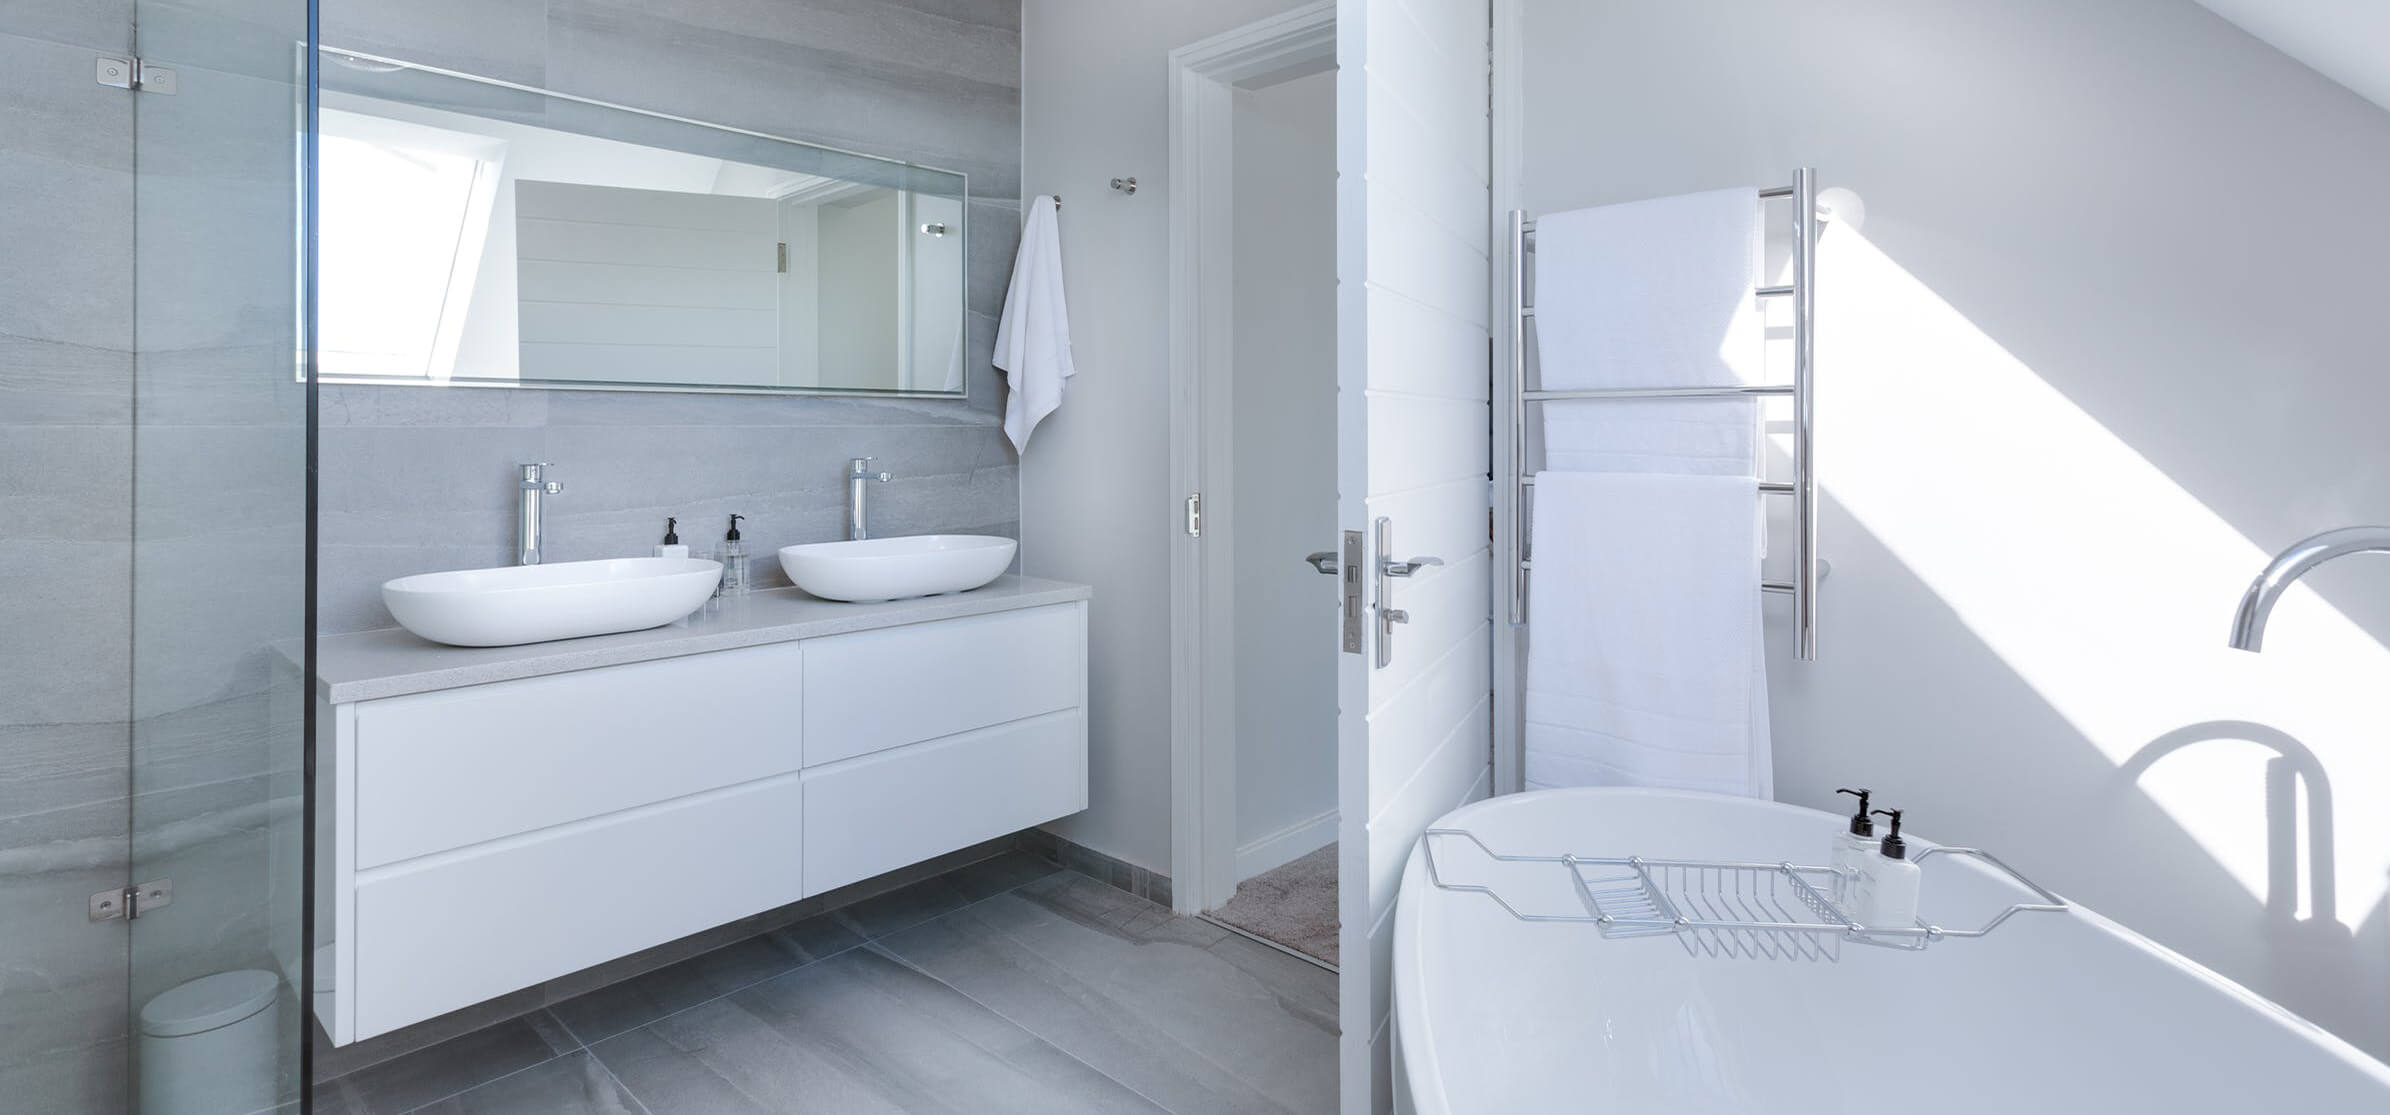 how-to-update-your-bathroom-on-the-cheap by-resurfacing-7.jpeg